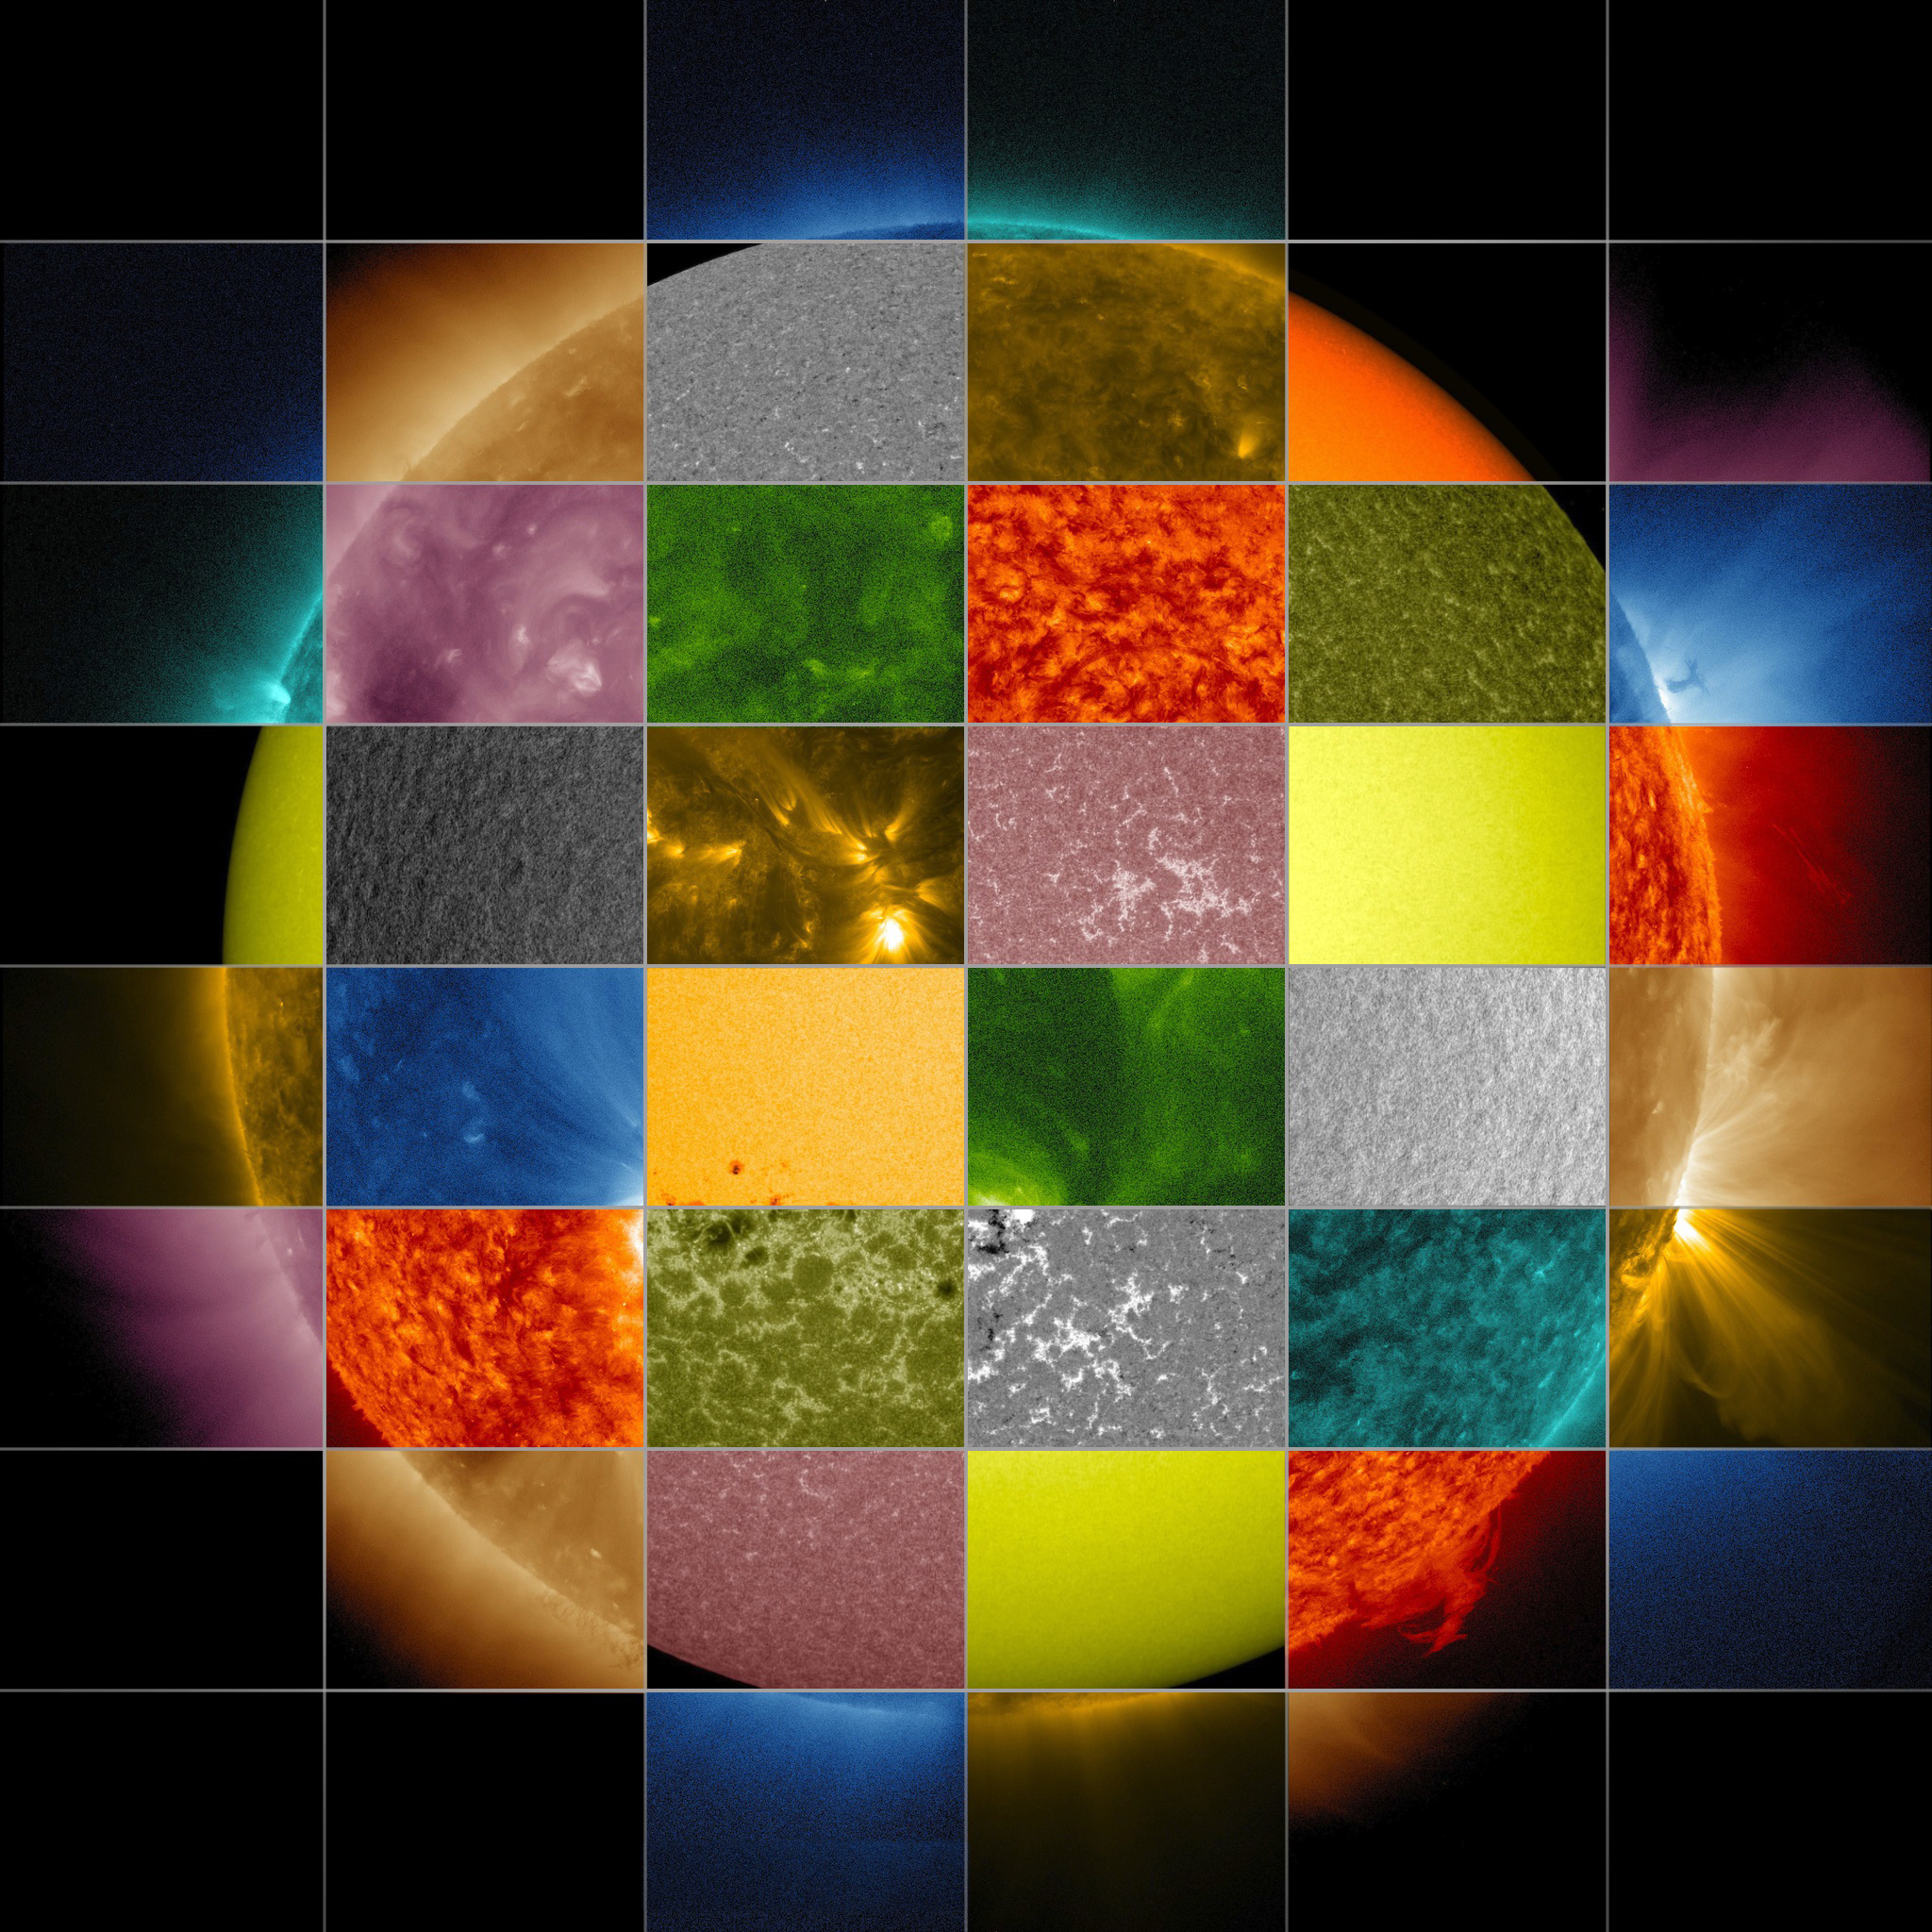 Why Nasa Scientists Observe The Sun In Different